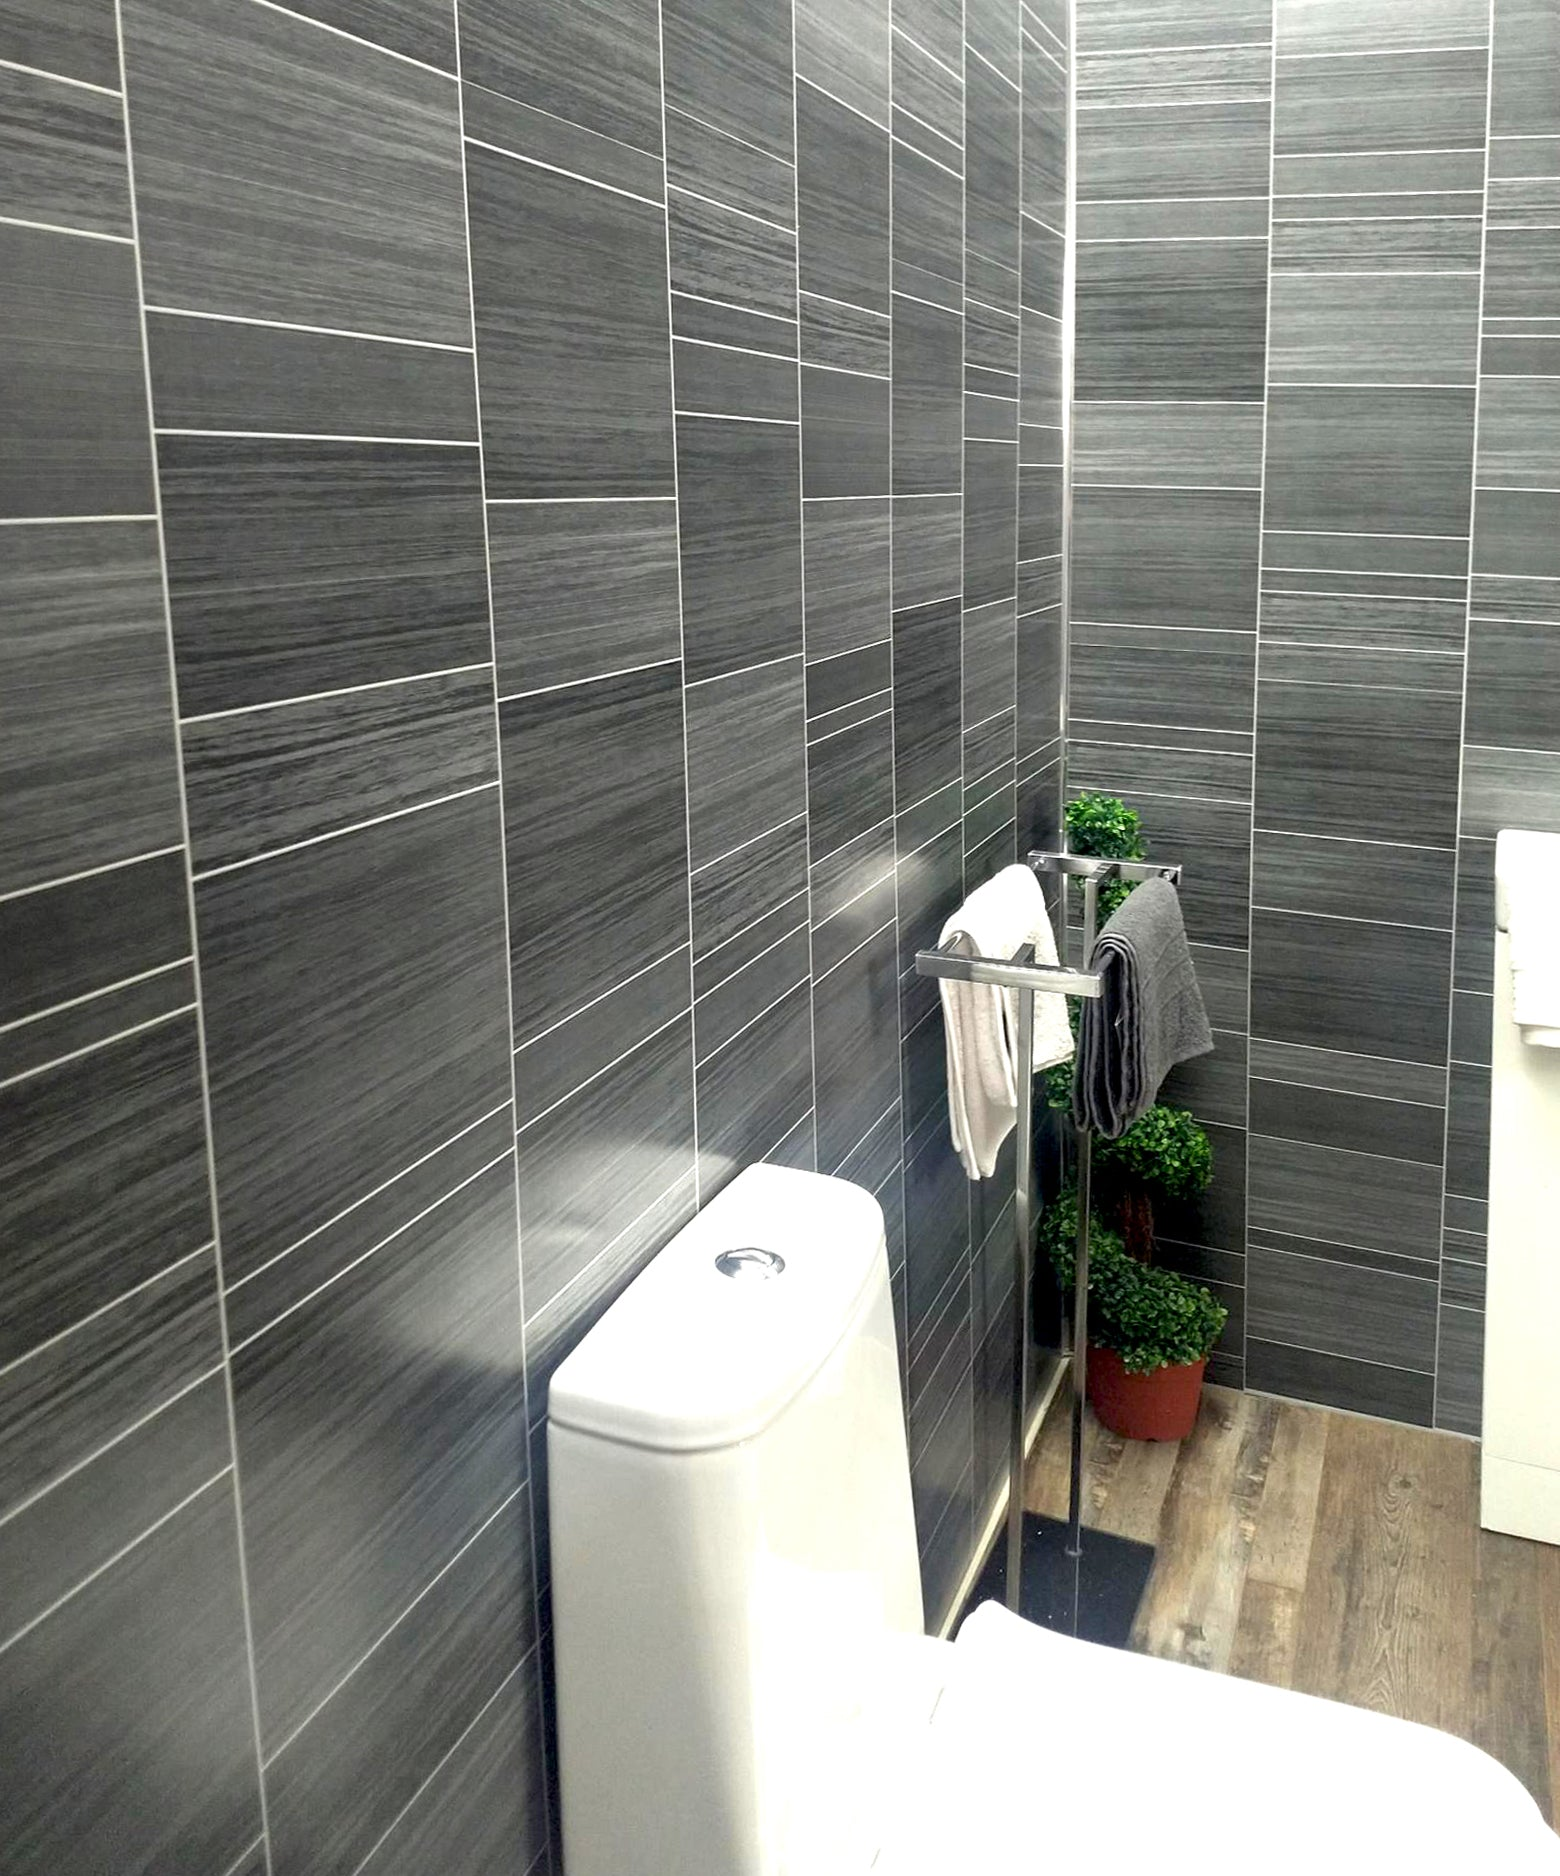 Executive Small Tile 8mm Wall Panels For Bathrooms Pvc Wall Cladding 2 6m X 0 25m Claddtech